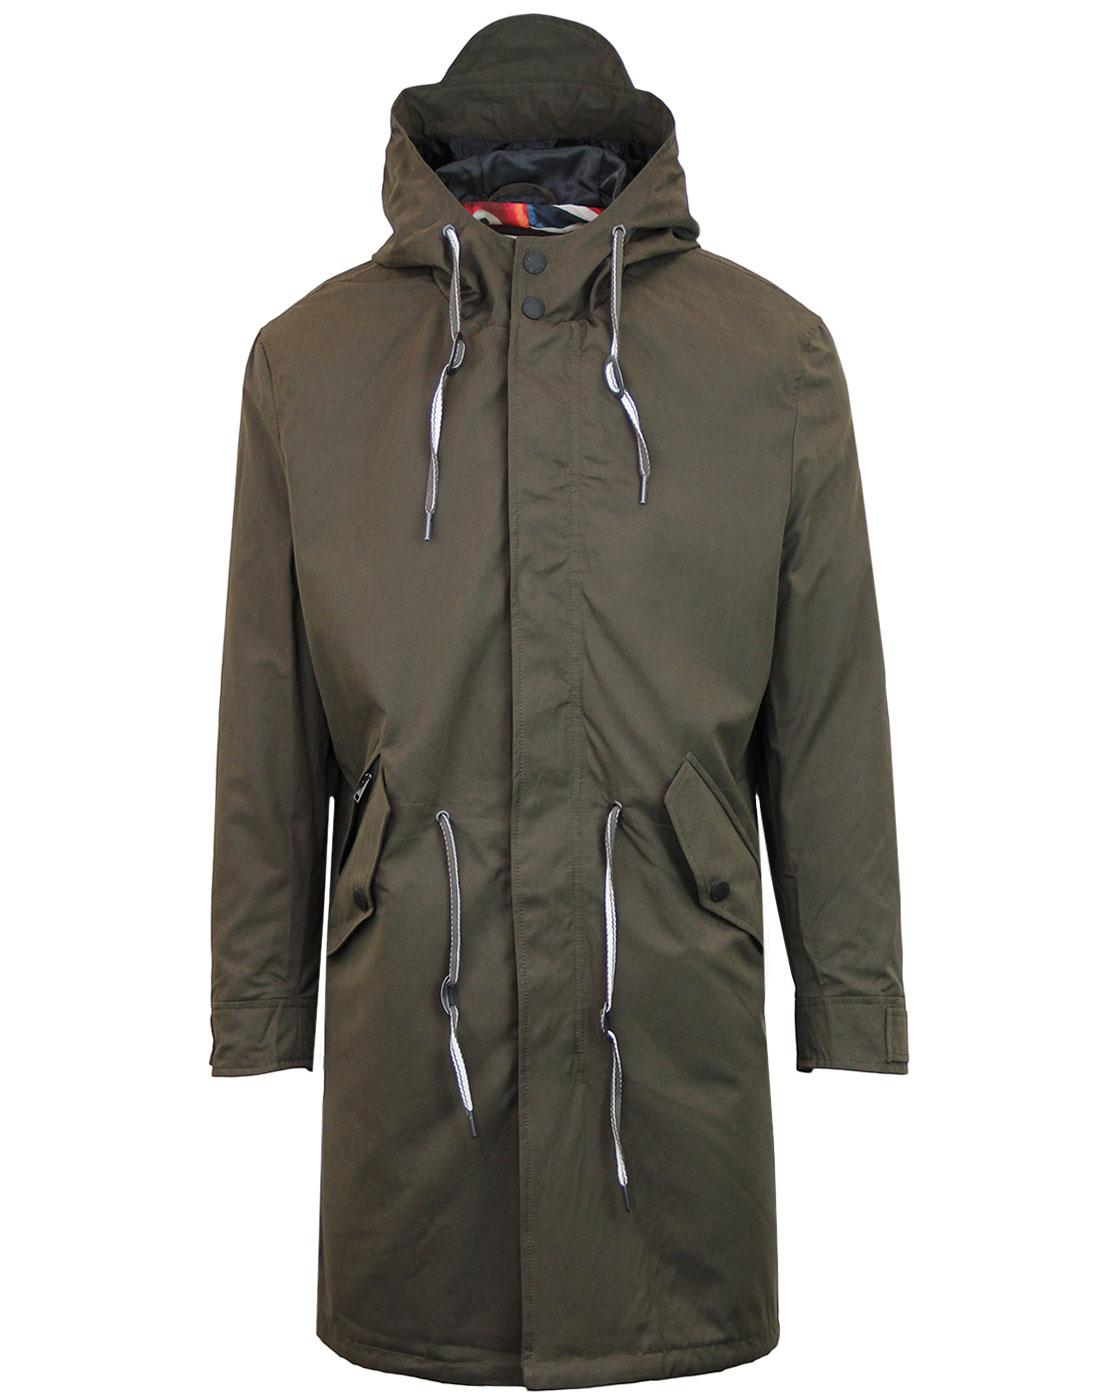 BEN SHERMAN Mod Union Jack Lined Fishtail Parka